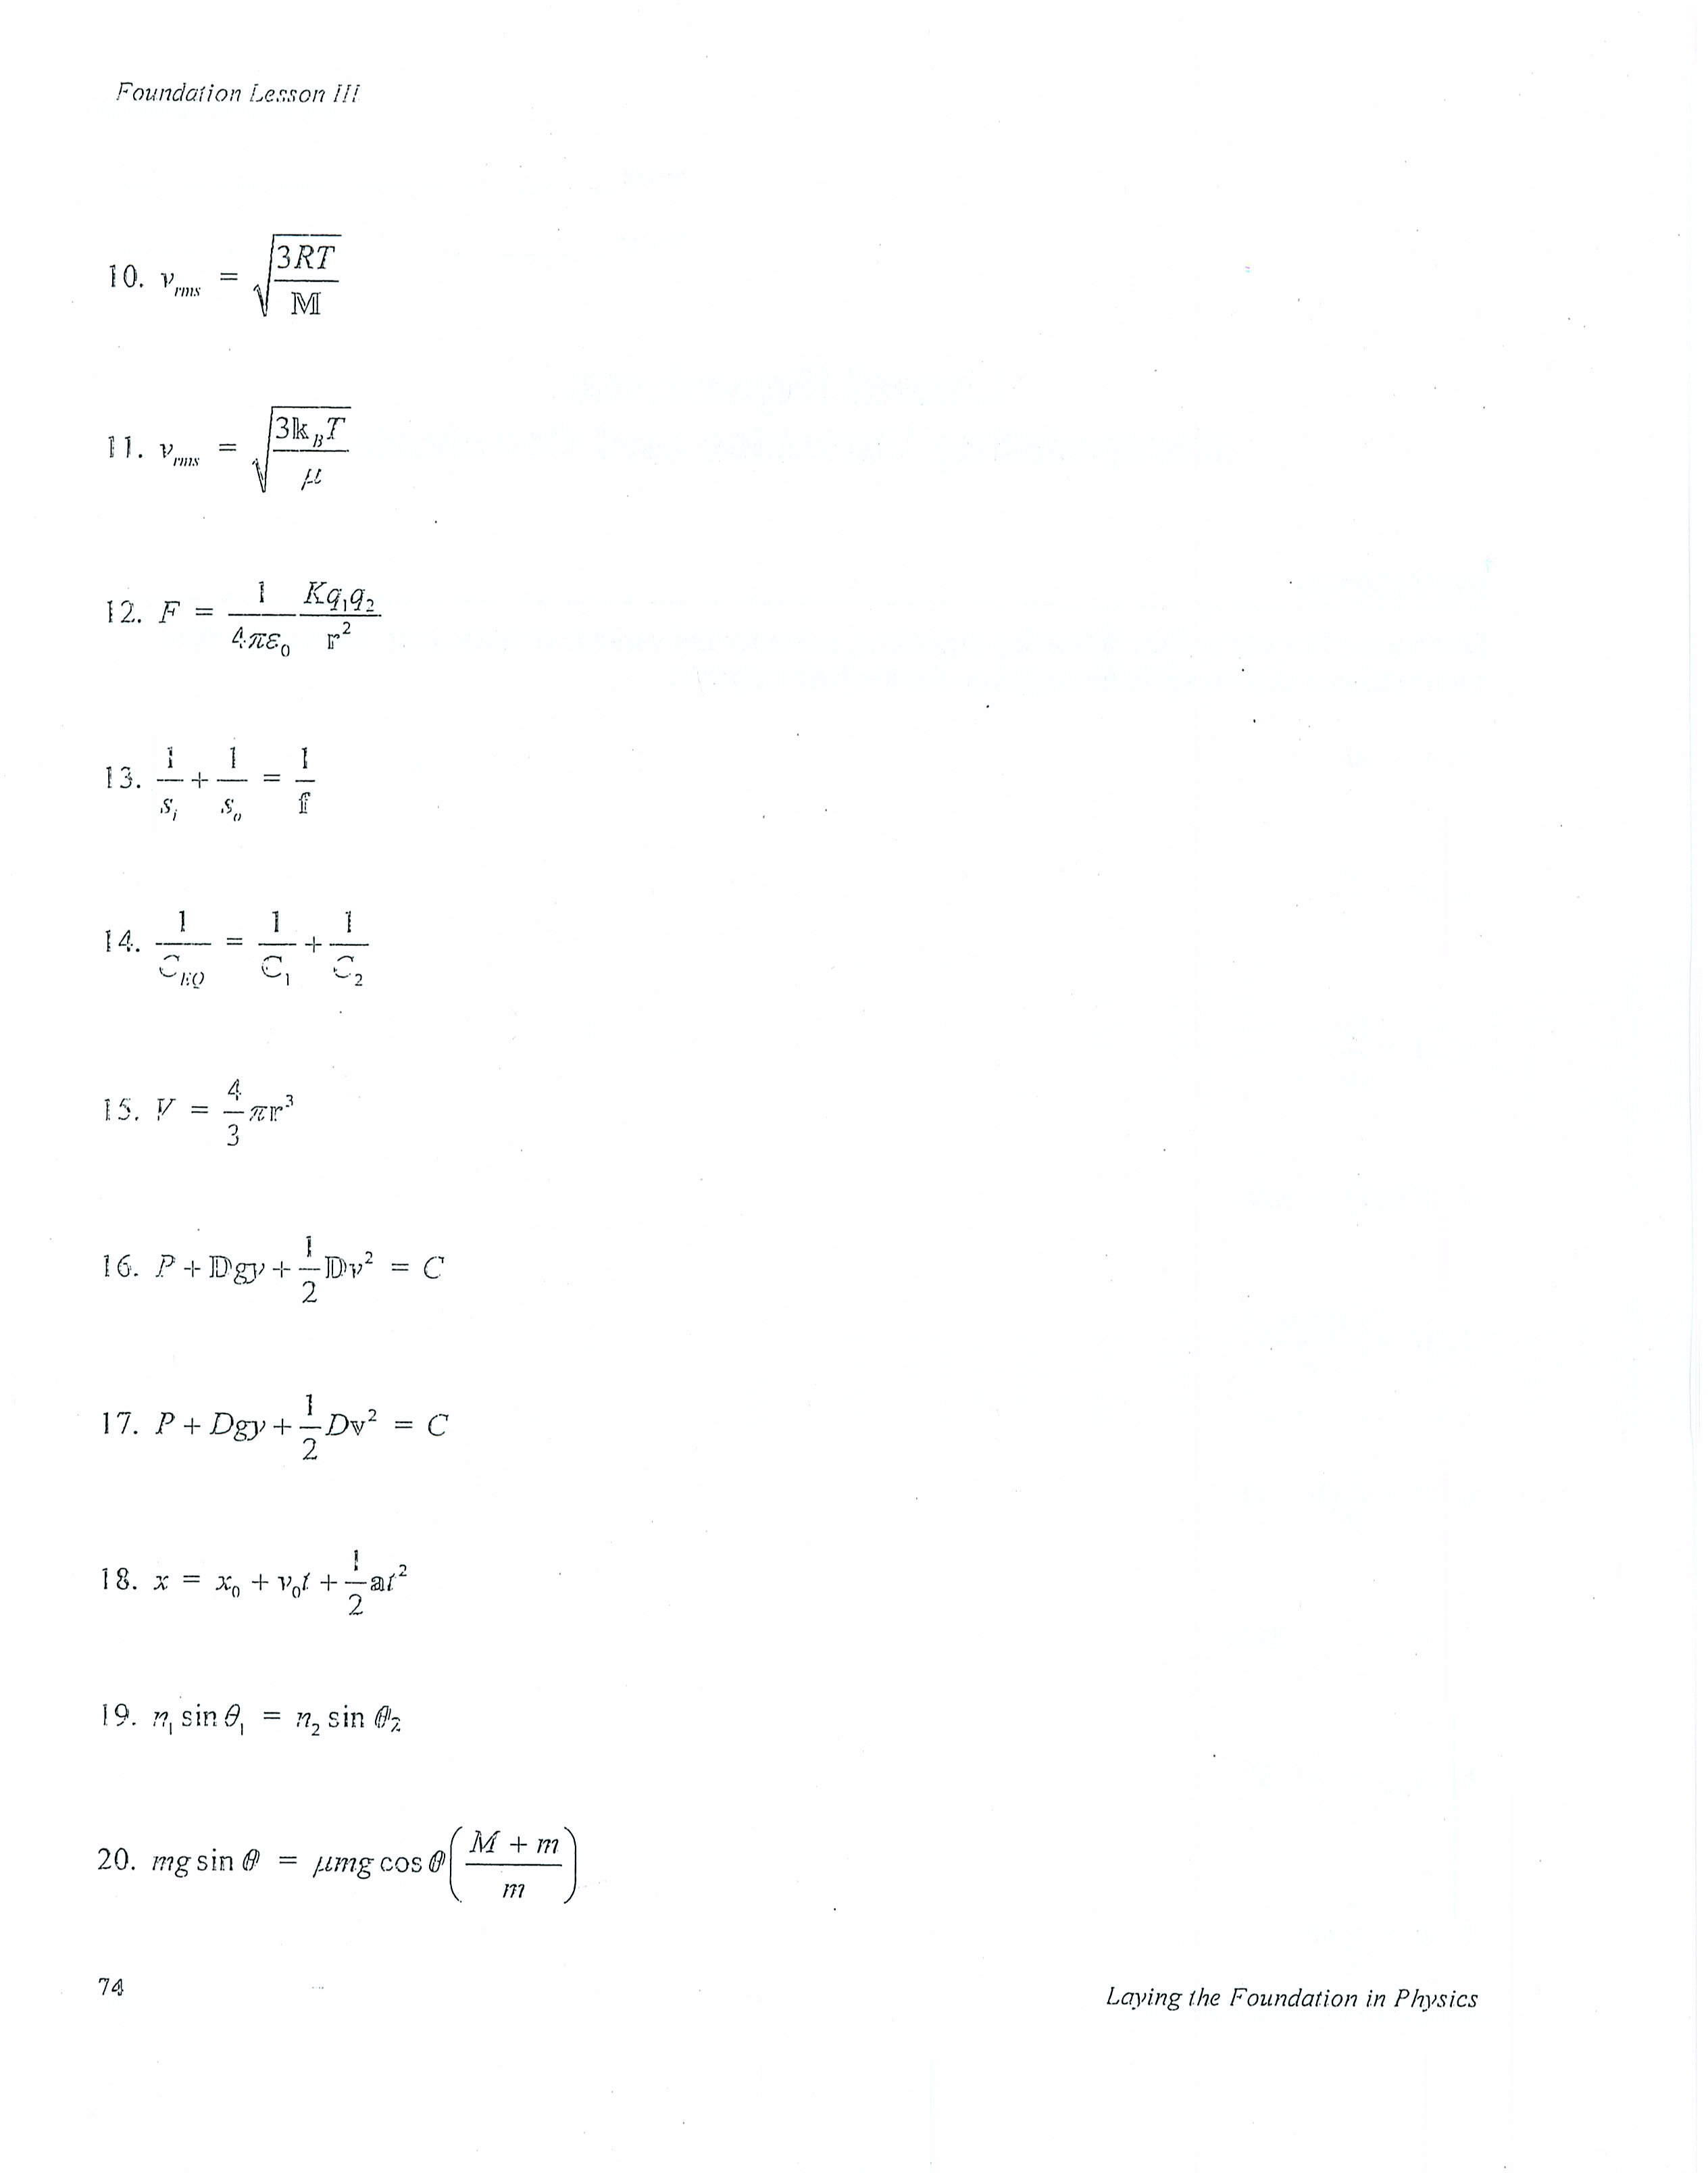 Worksheets Solving Literal Equations Worksheet literal equations worksheets free library download worksheets